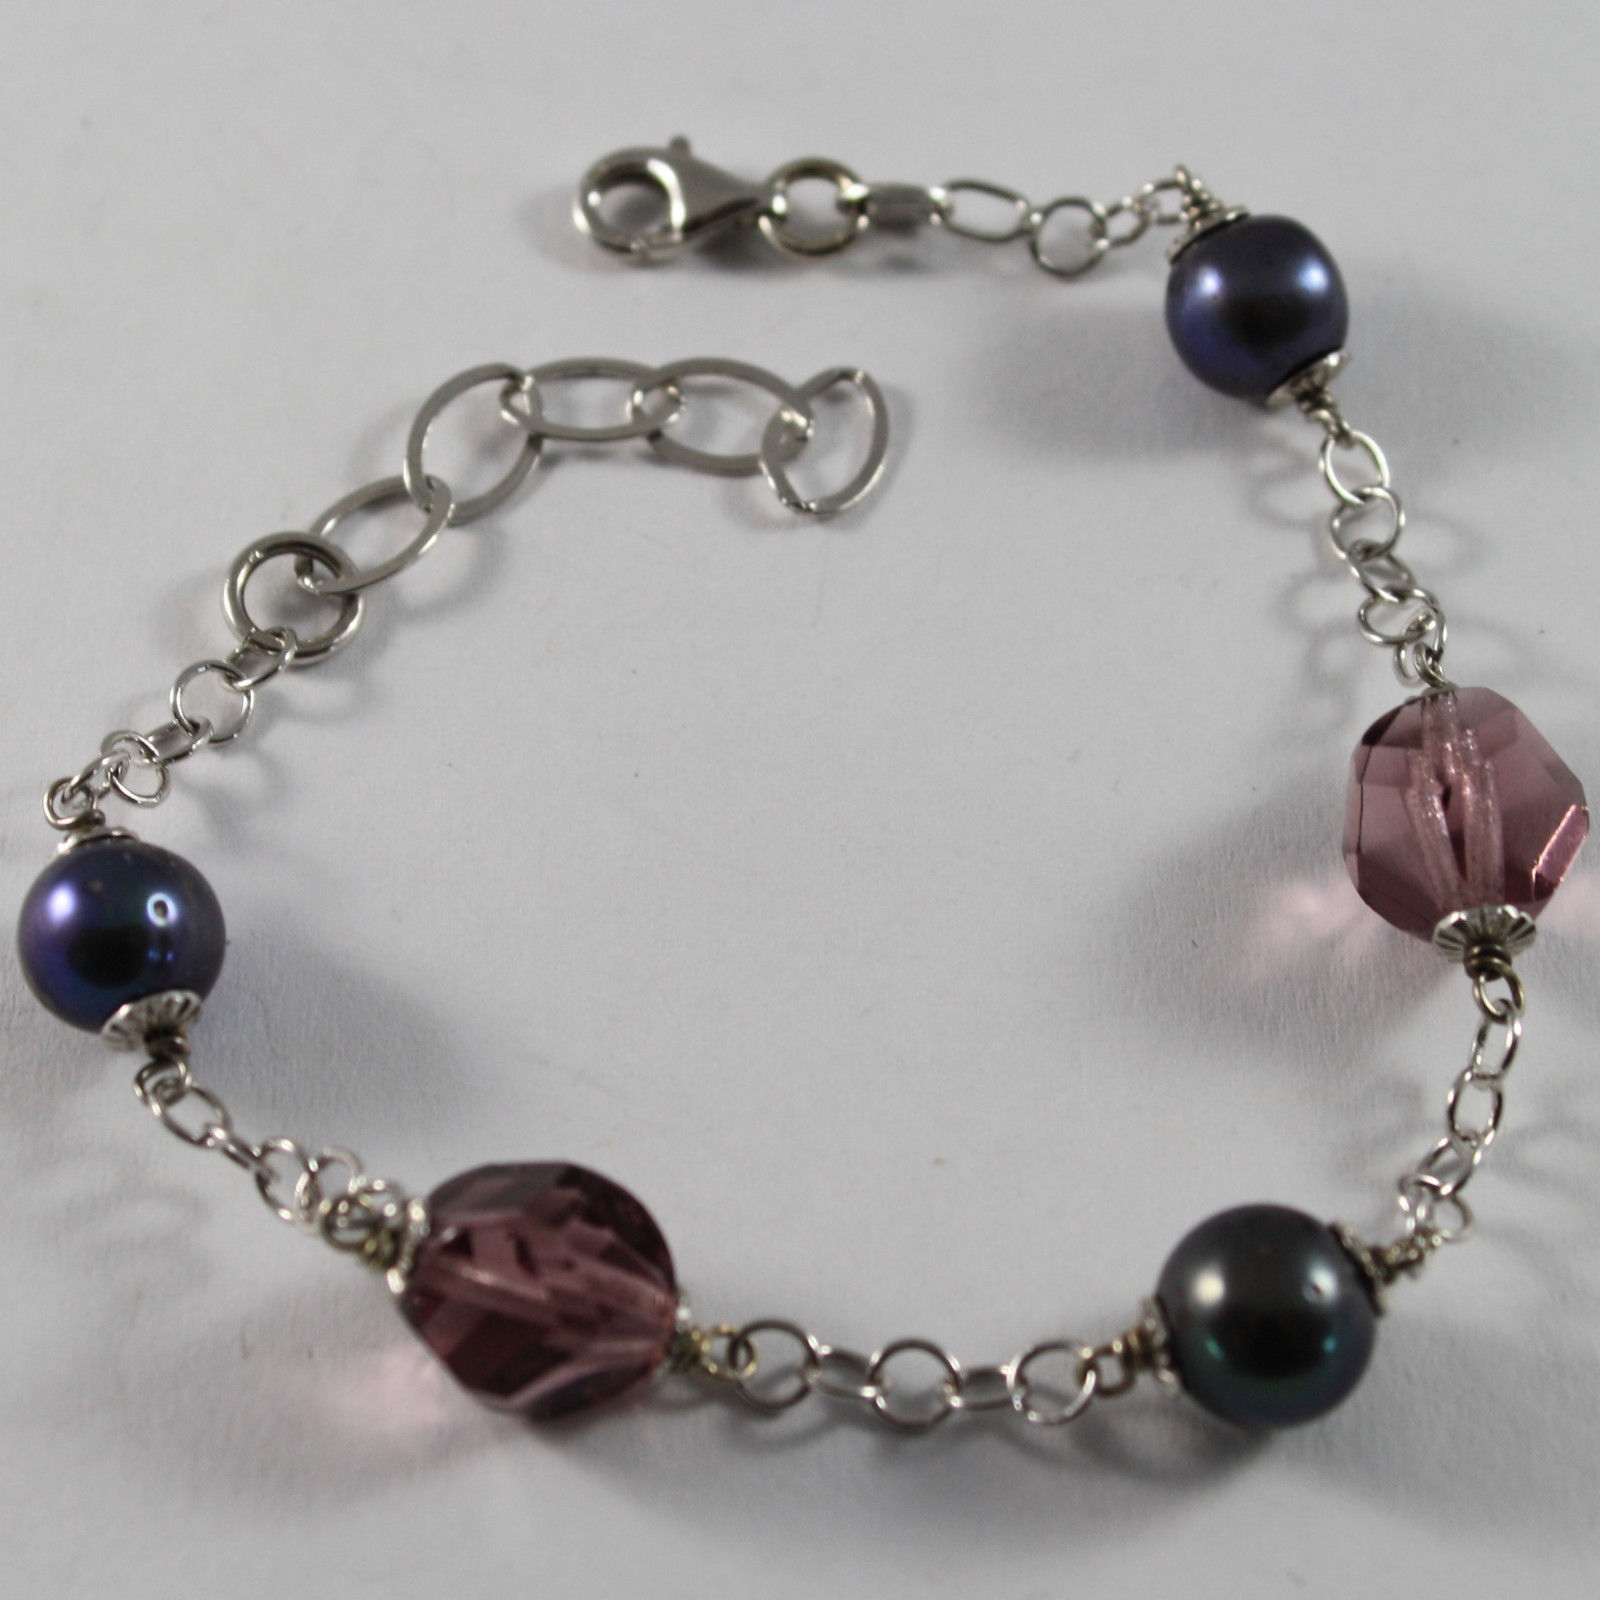 .925 RHODIUM SILVER BRACELET WITH FRESHWATER PEARL GRAY AND PURPLE CRISTALS